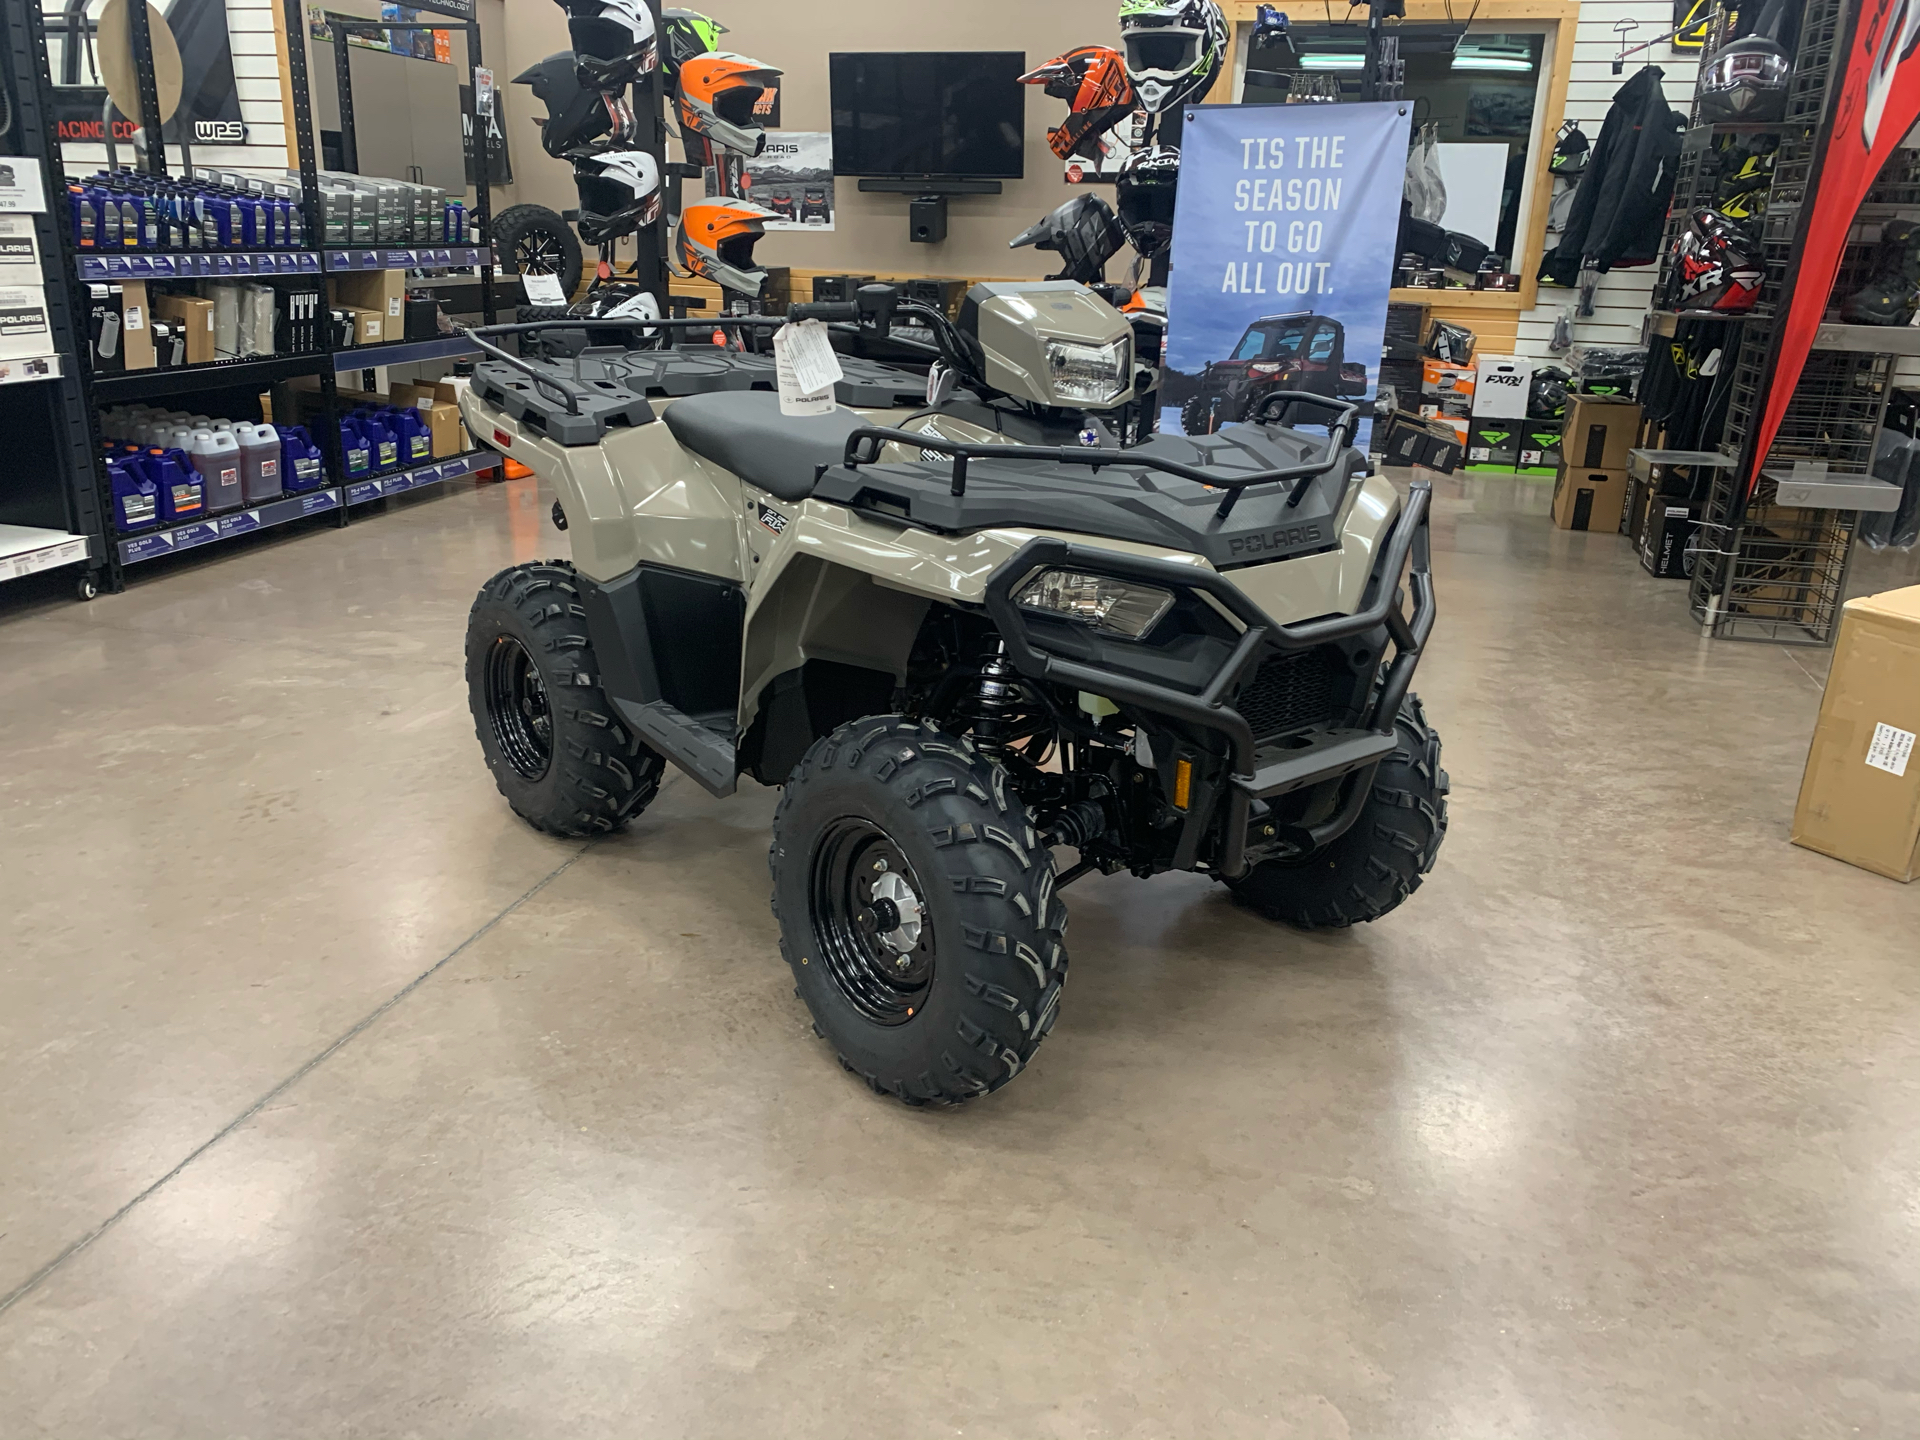 2021 Polaris Sportsman 570 EPS in Algona, Iowa - Photo 2